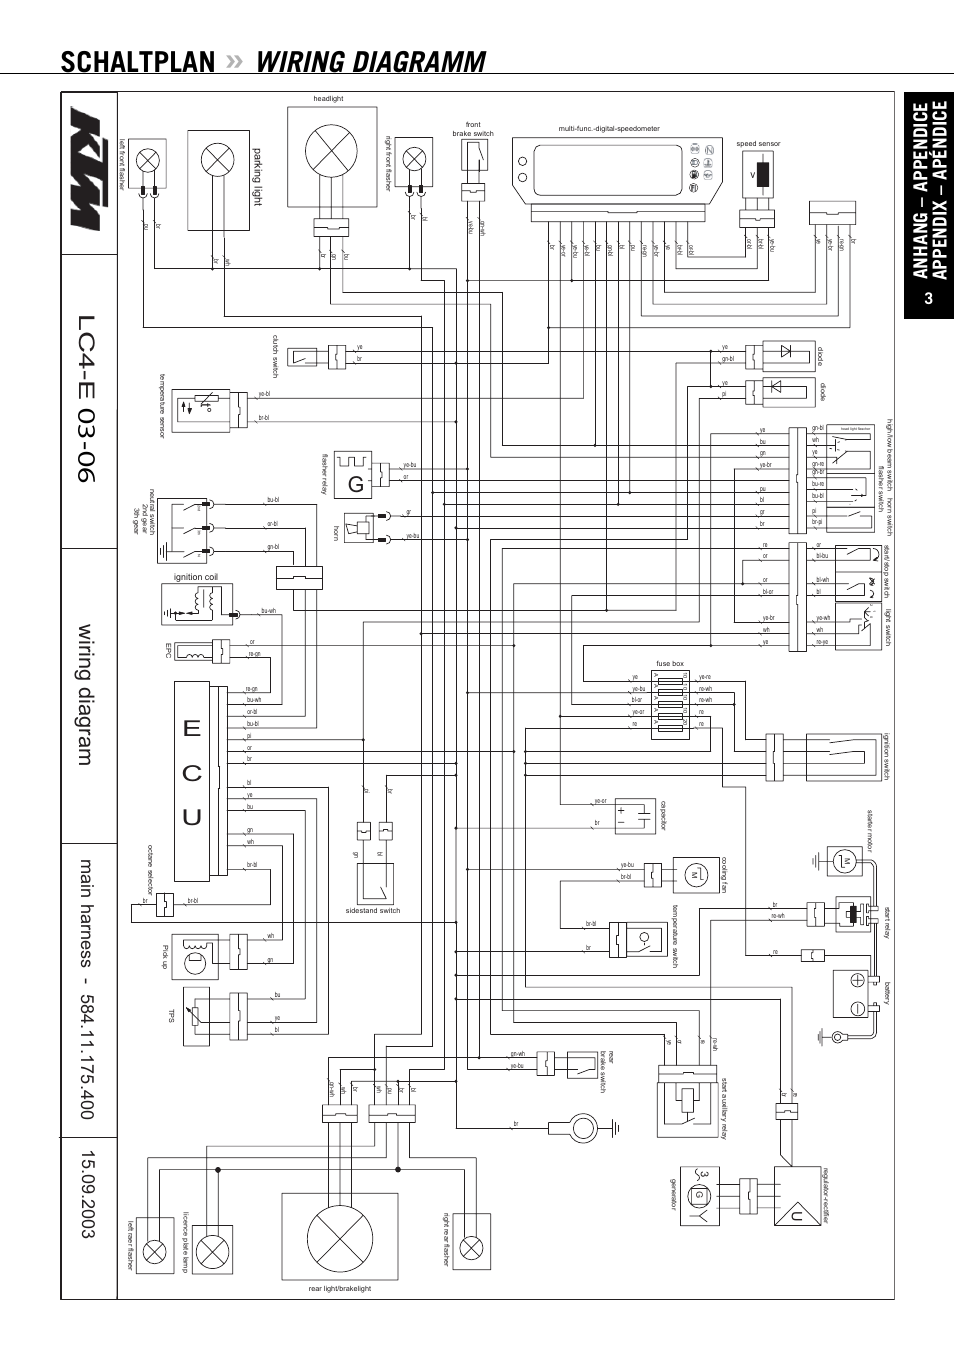 Schaltplan Wiring Diagramm Anhang Appendice Appendix Apndice High Low Beam Switch Diagram Ktm Enduro 640 Lc4